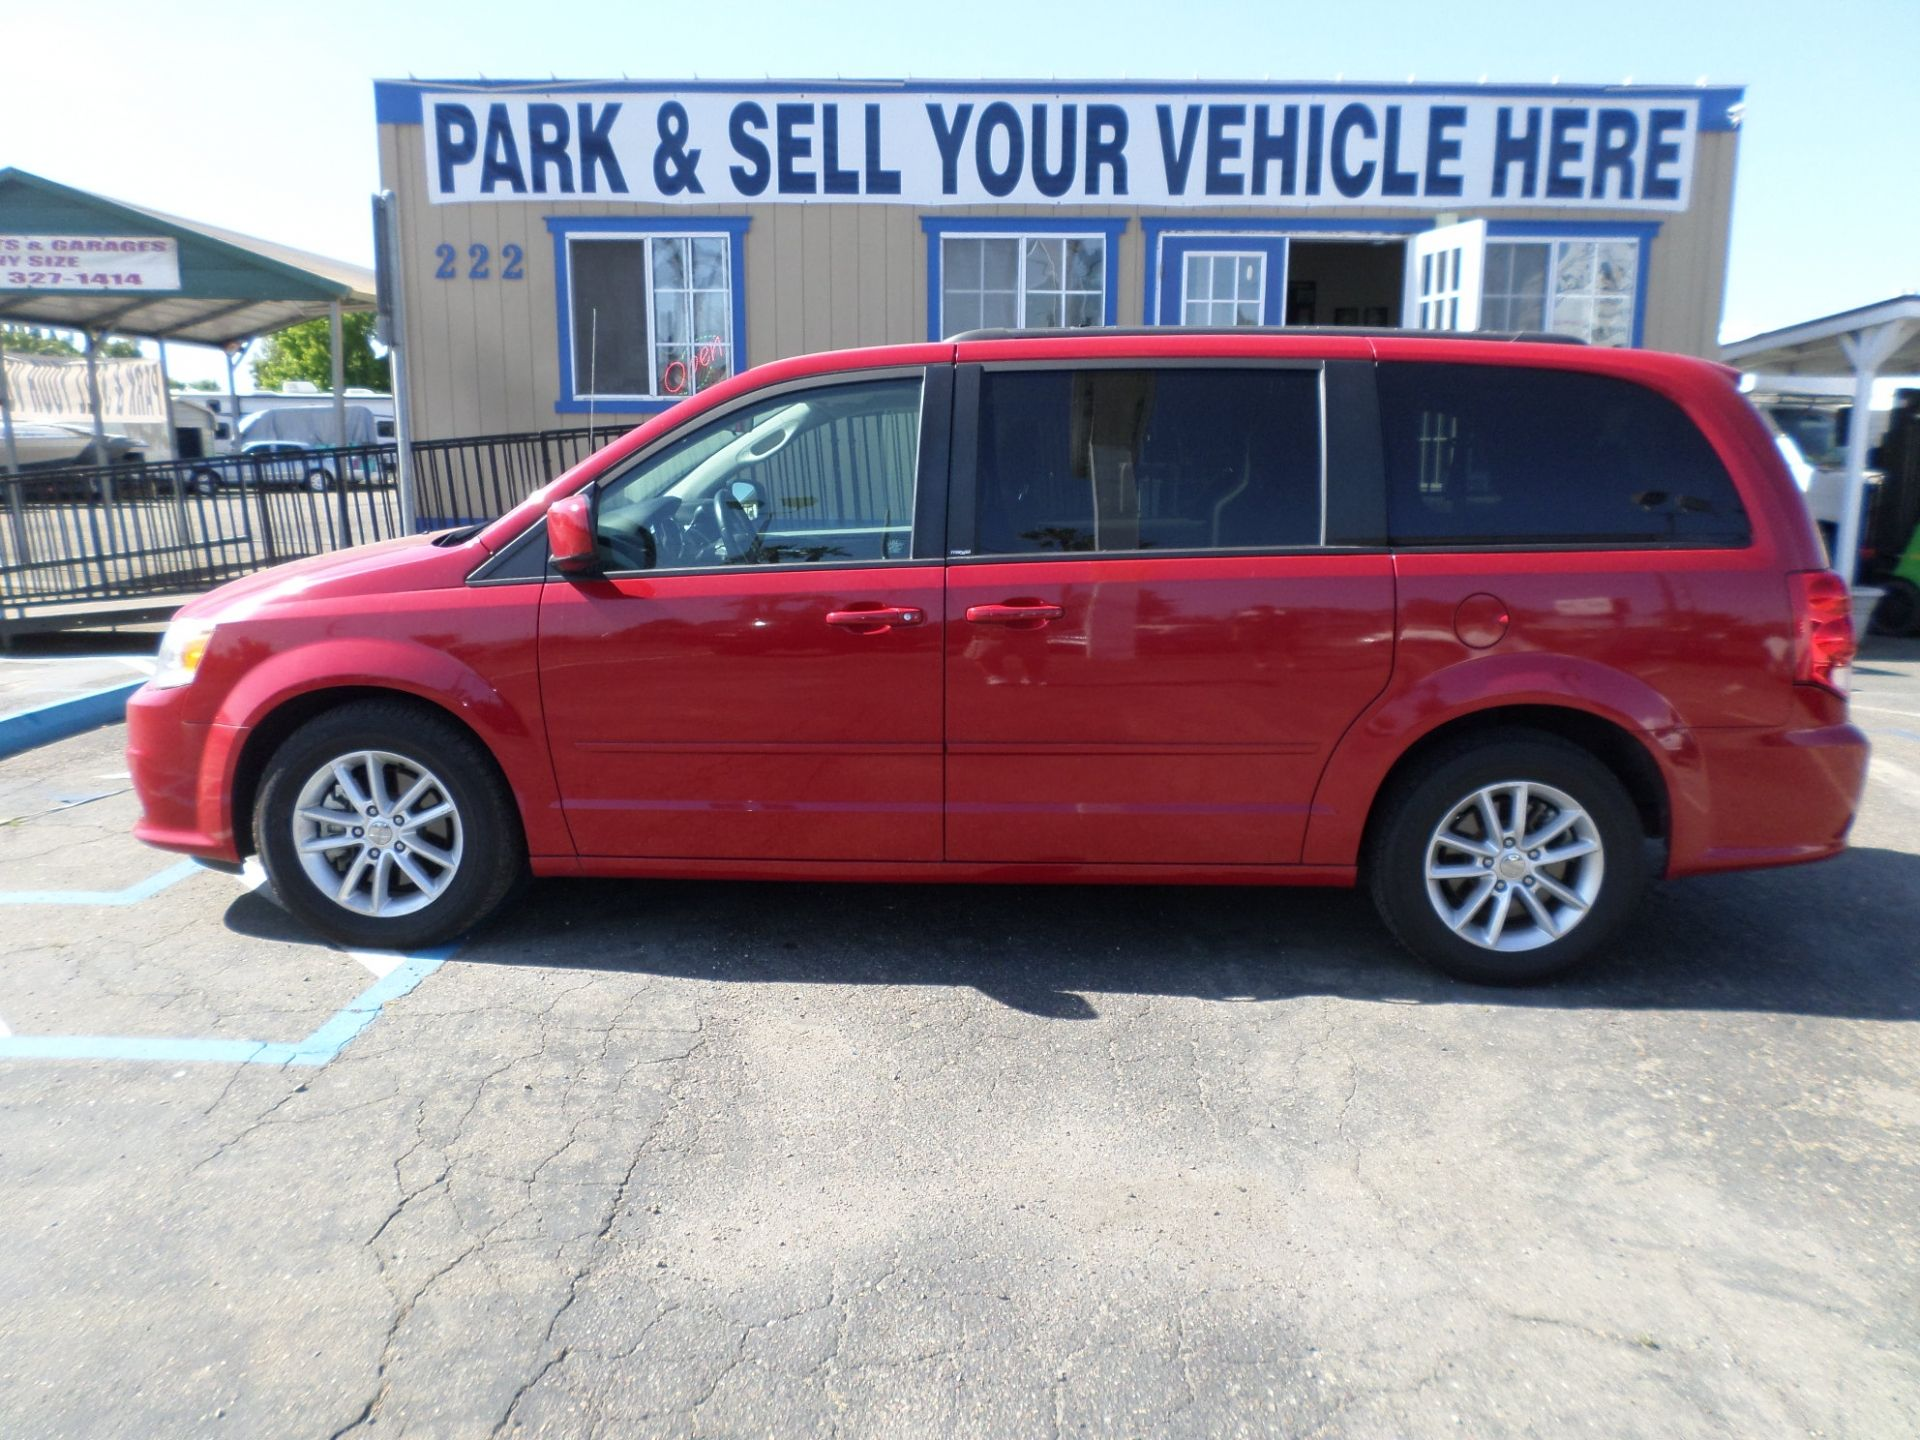 2013 Dodge Grand Caravan Grand Caravan Van For Sale Caravans